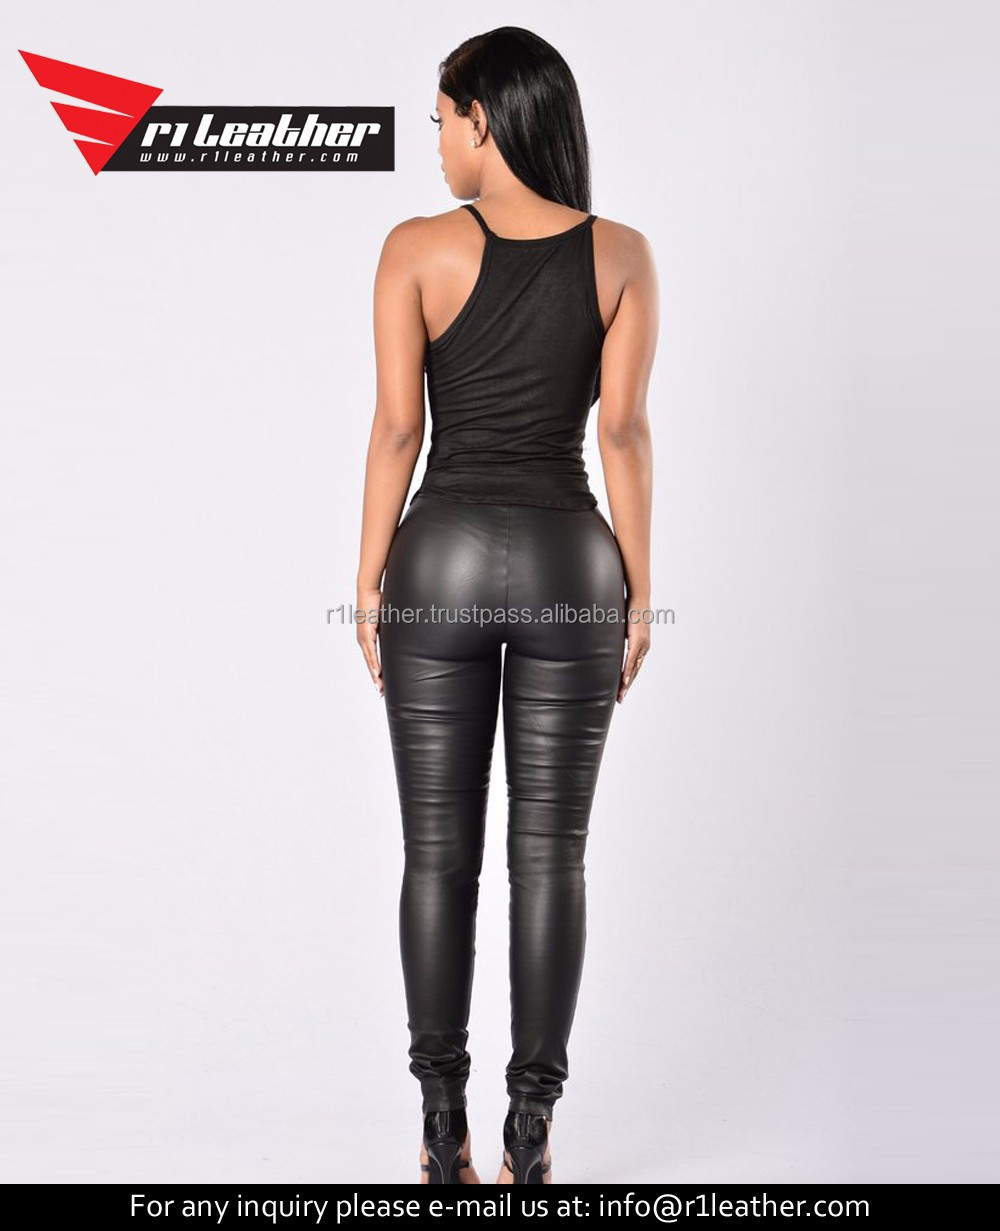 Comfortable & Breathable Gym Pants/Tights/Leggings Hot Selling Items